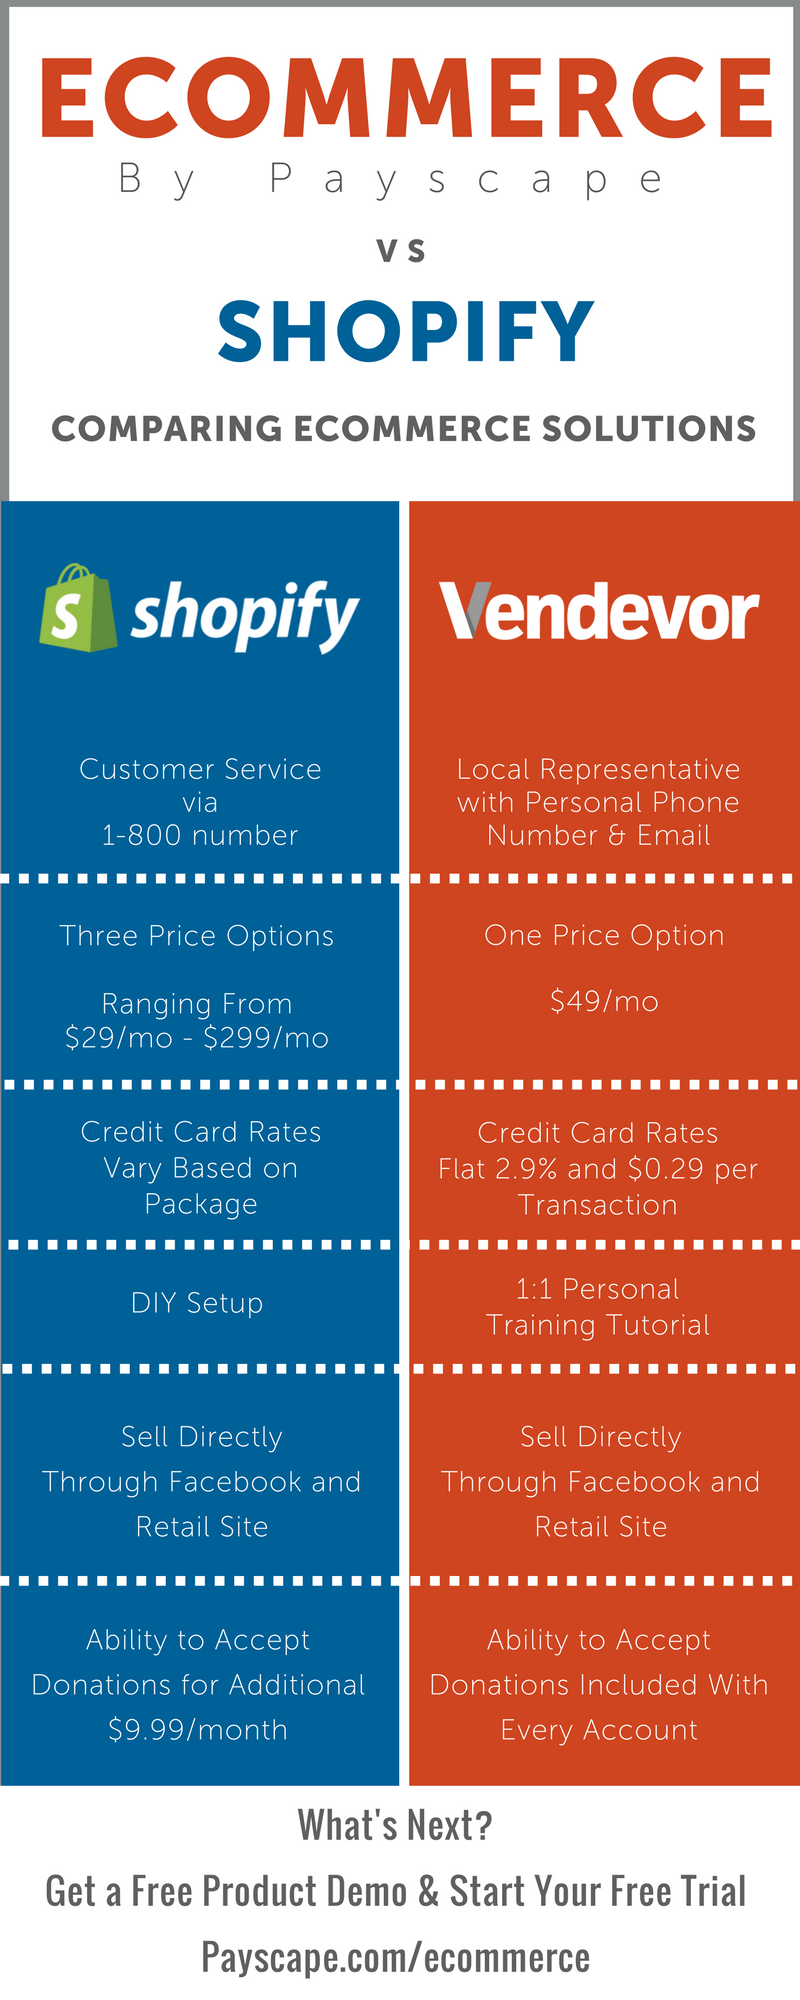 Vendevor_vs_Shopify_-_comparing_ecommerce_options_online_shop-_Infographic_2.png